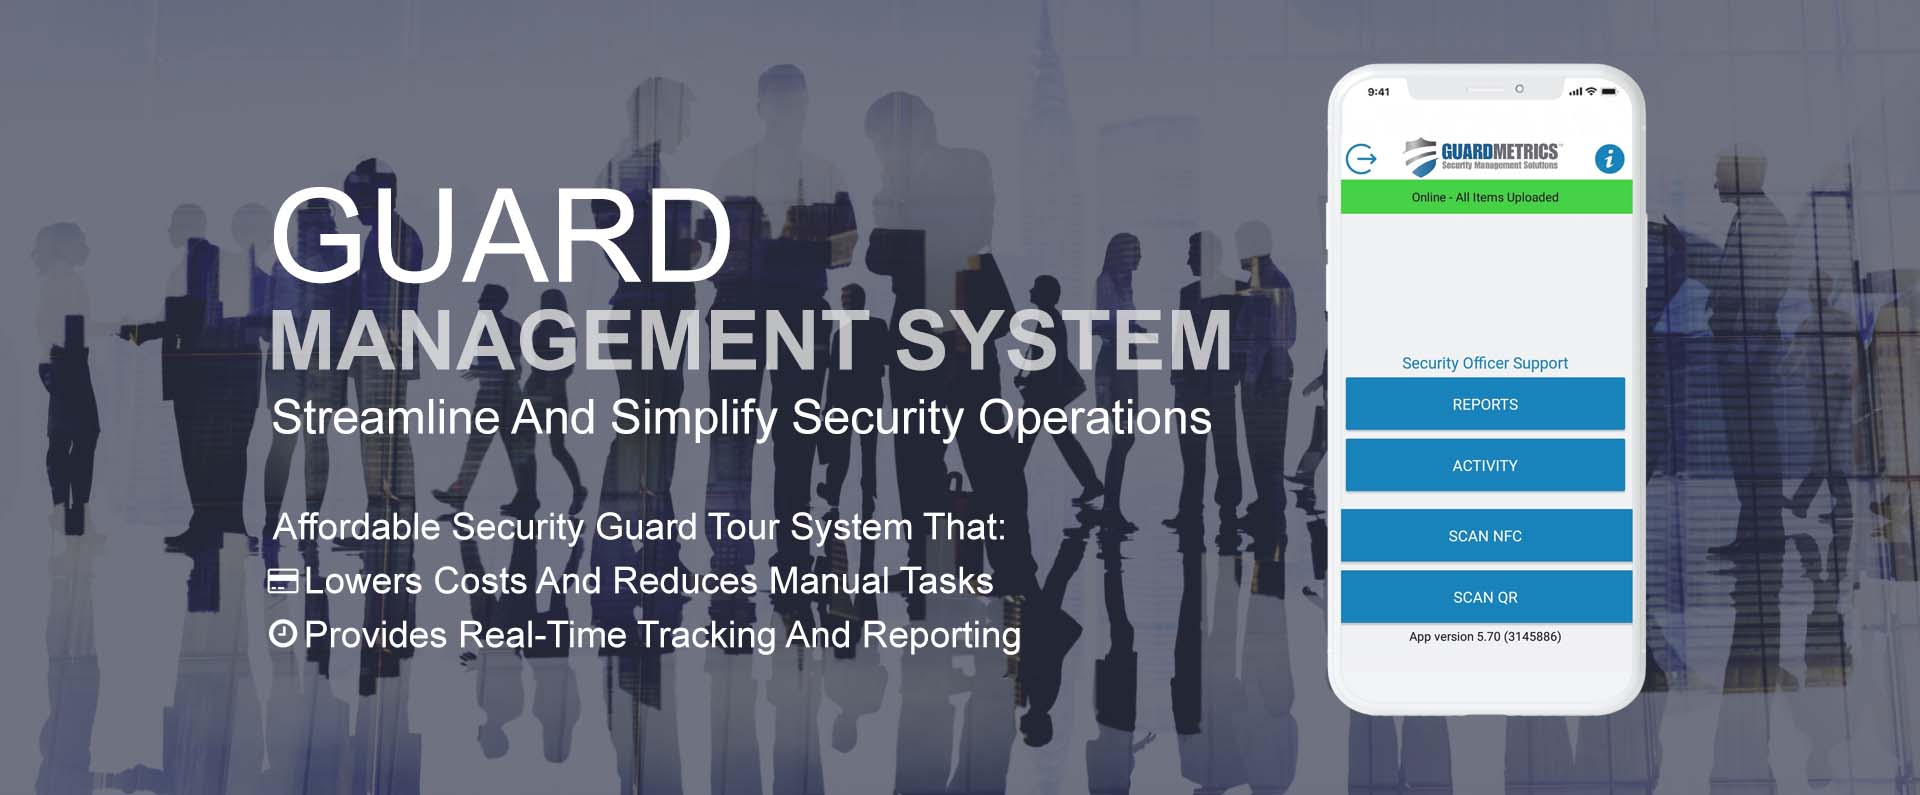 Streamline And Simplify Security Operations